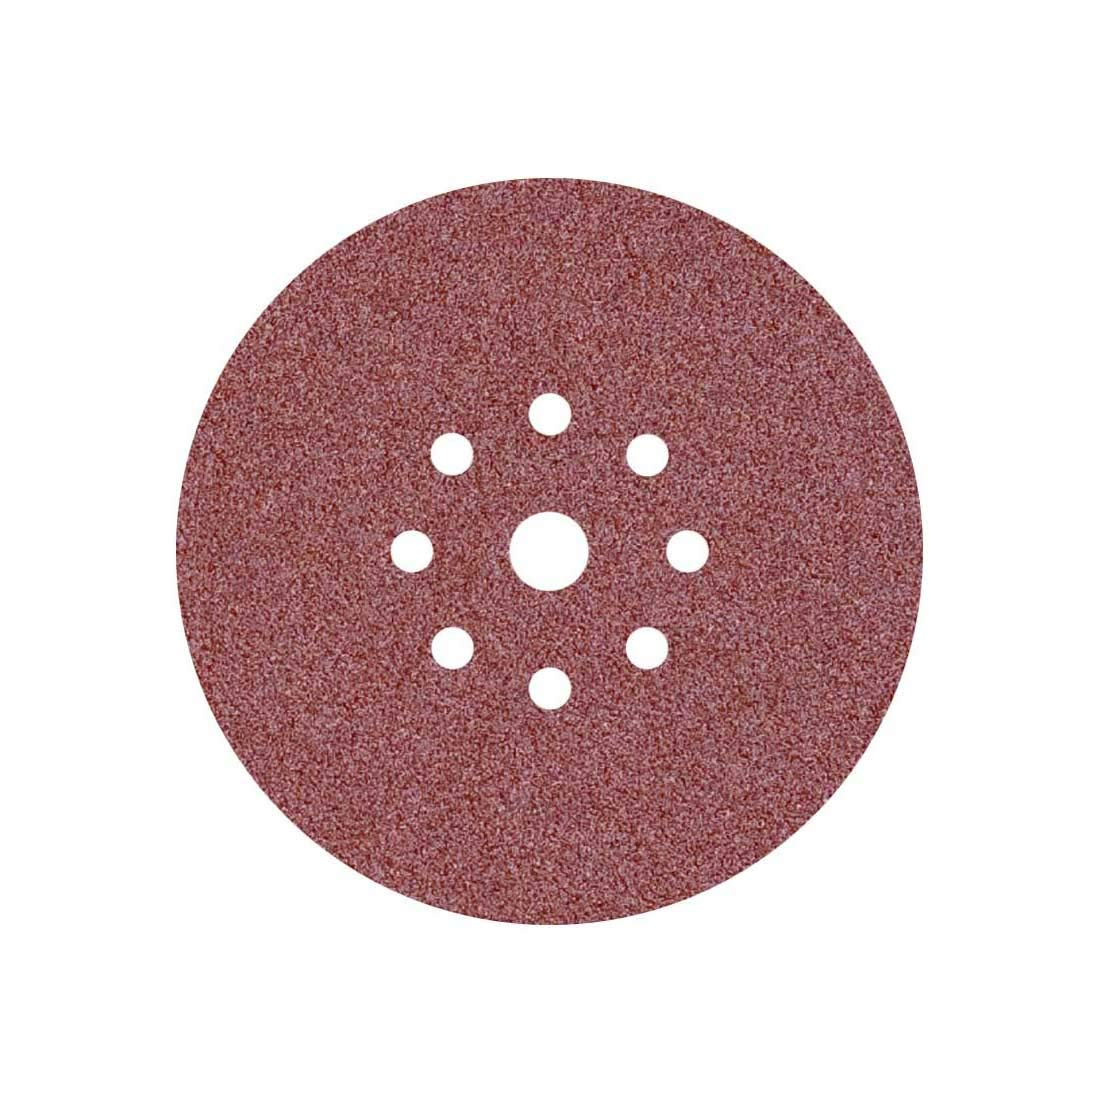 Grit 150-9 hole 25 MioTools Hook /& Loop Sanding Discs for Drywall Sanders /Ø 225 mm